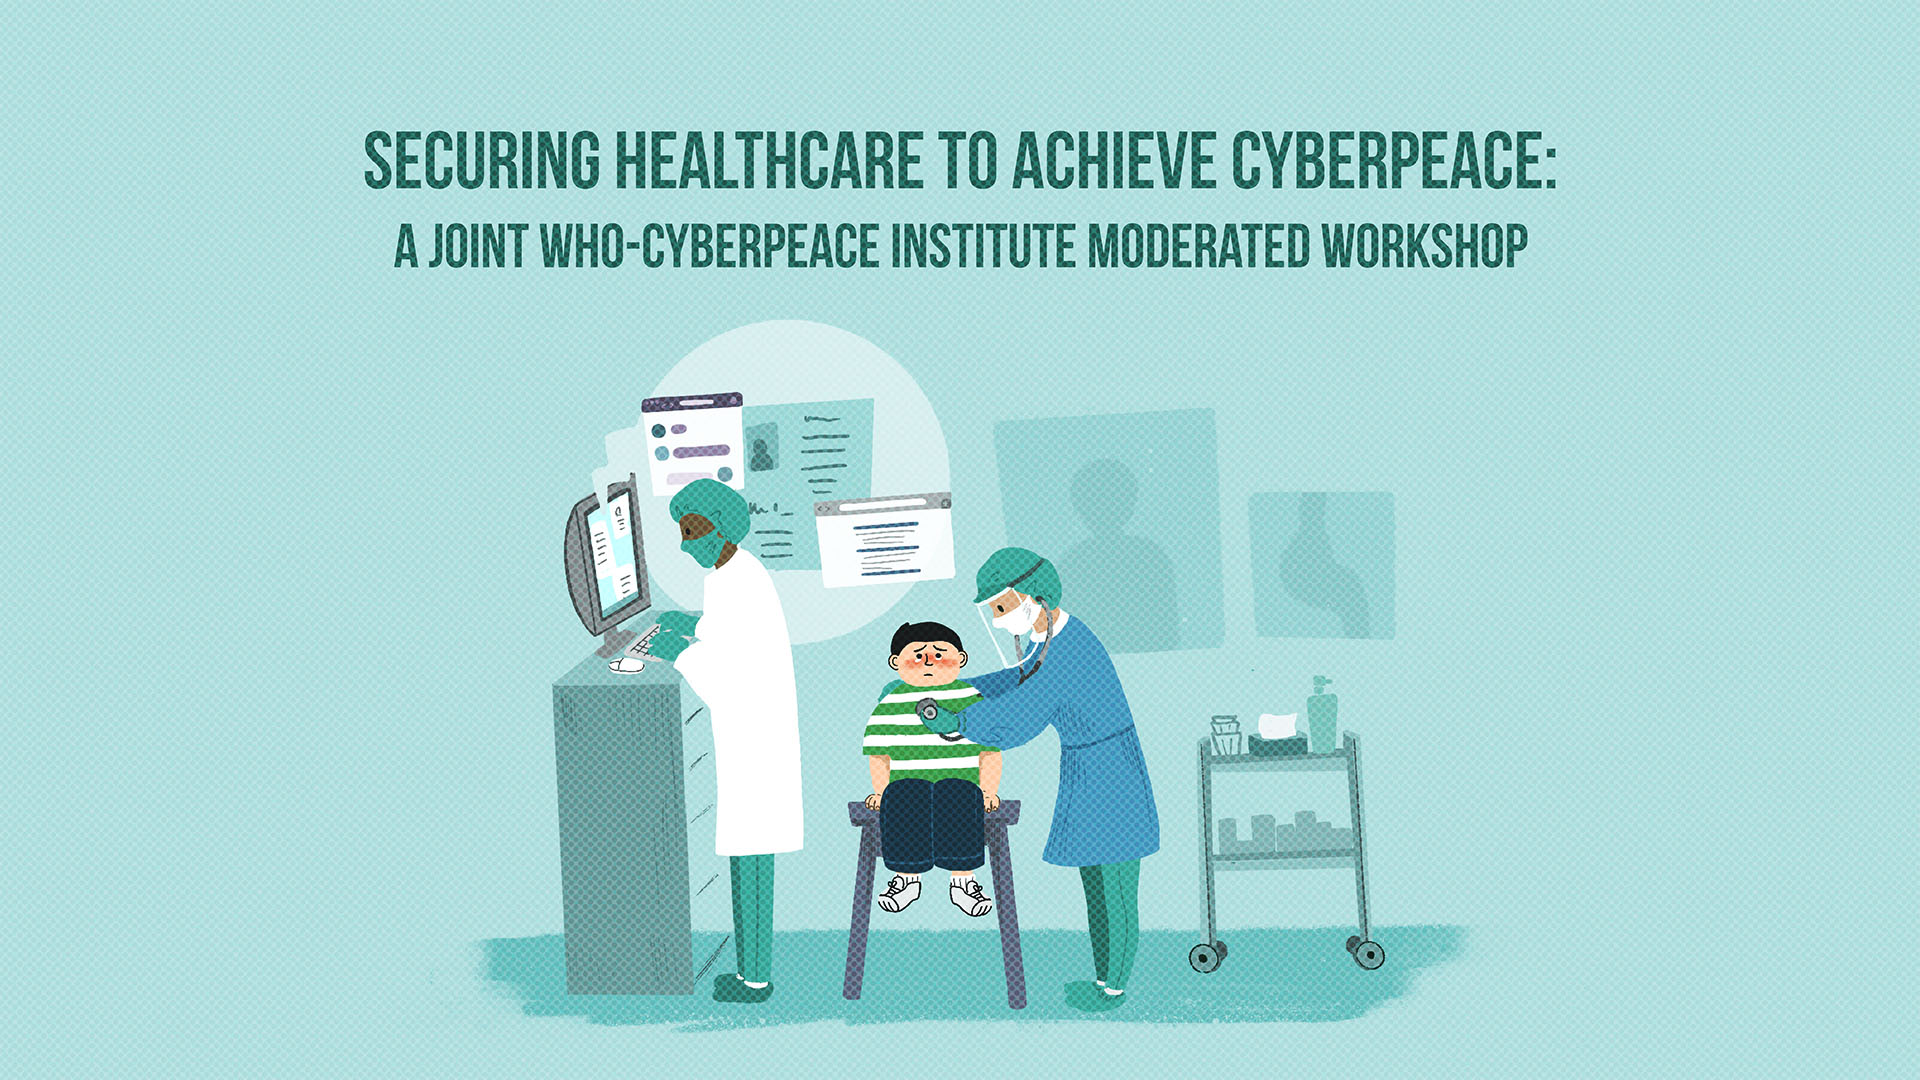 Securing Healthcare to Achieve Cyberpeace: A Joint WHO-CyberPeace Institute Moderated Workshop